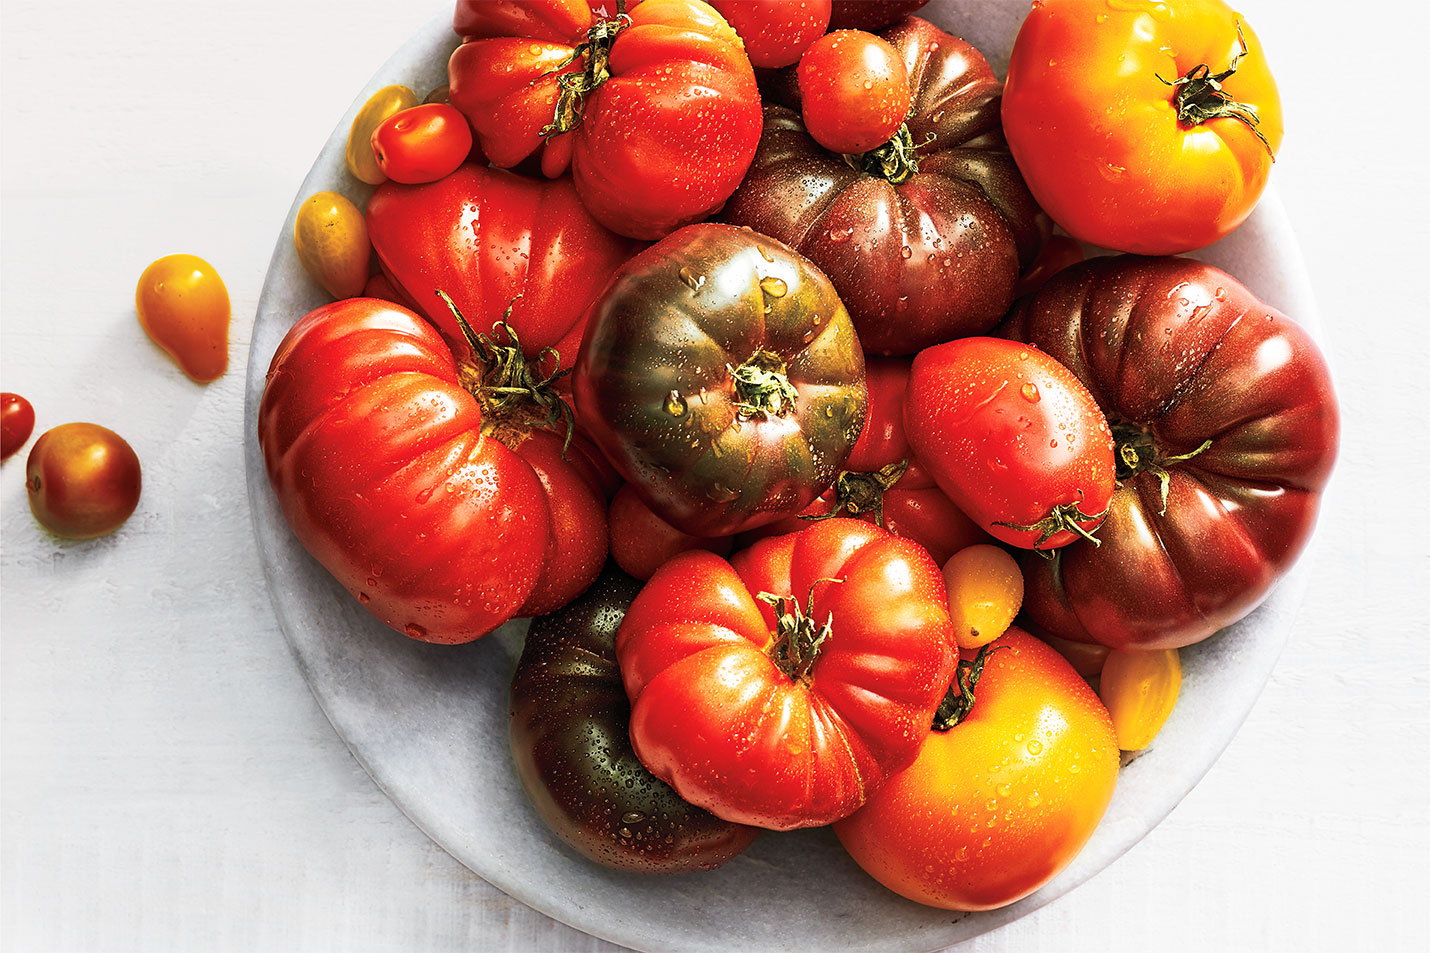 heirloom tomatoes on plate with water droplets on top